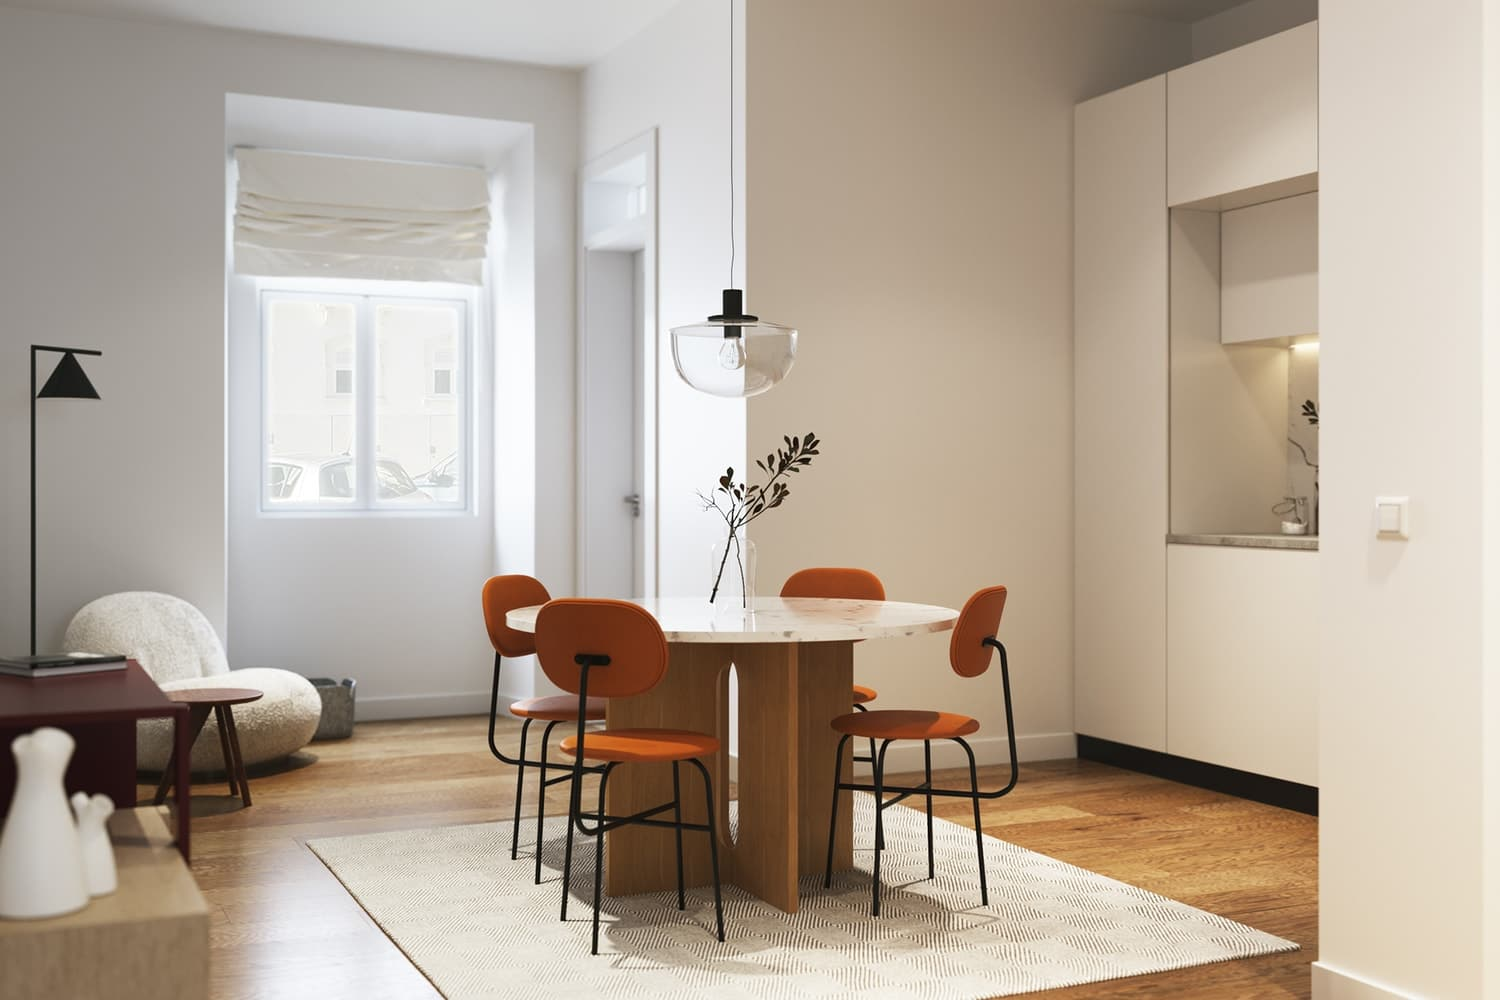 Dinning Table With Hanging Lamp -DESIGN BY MIGUEL SOEIRO